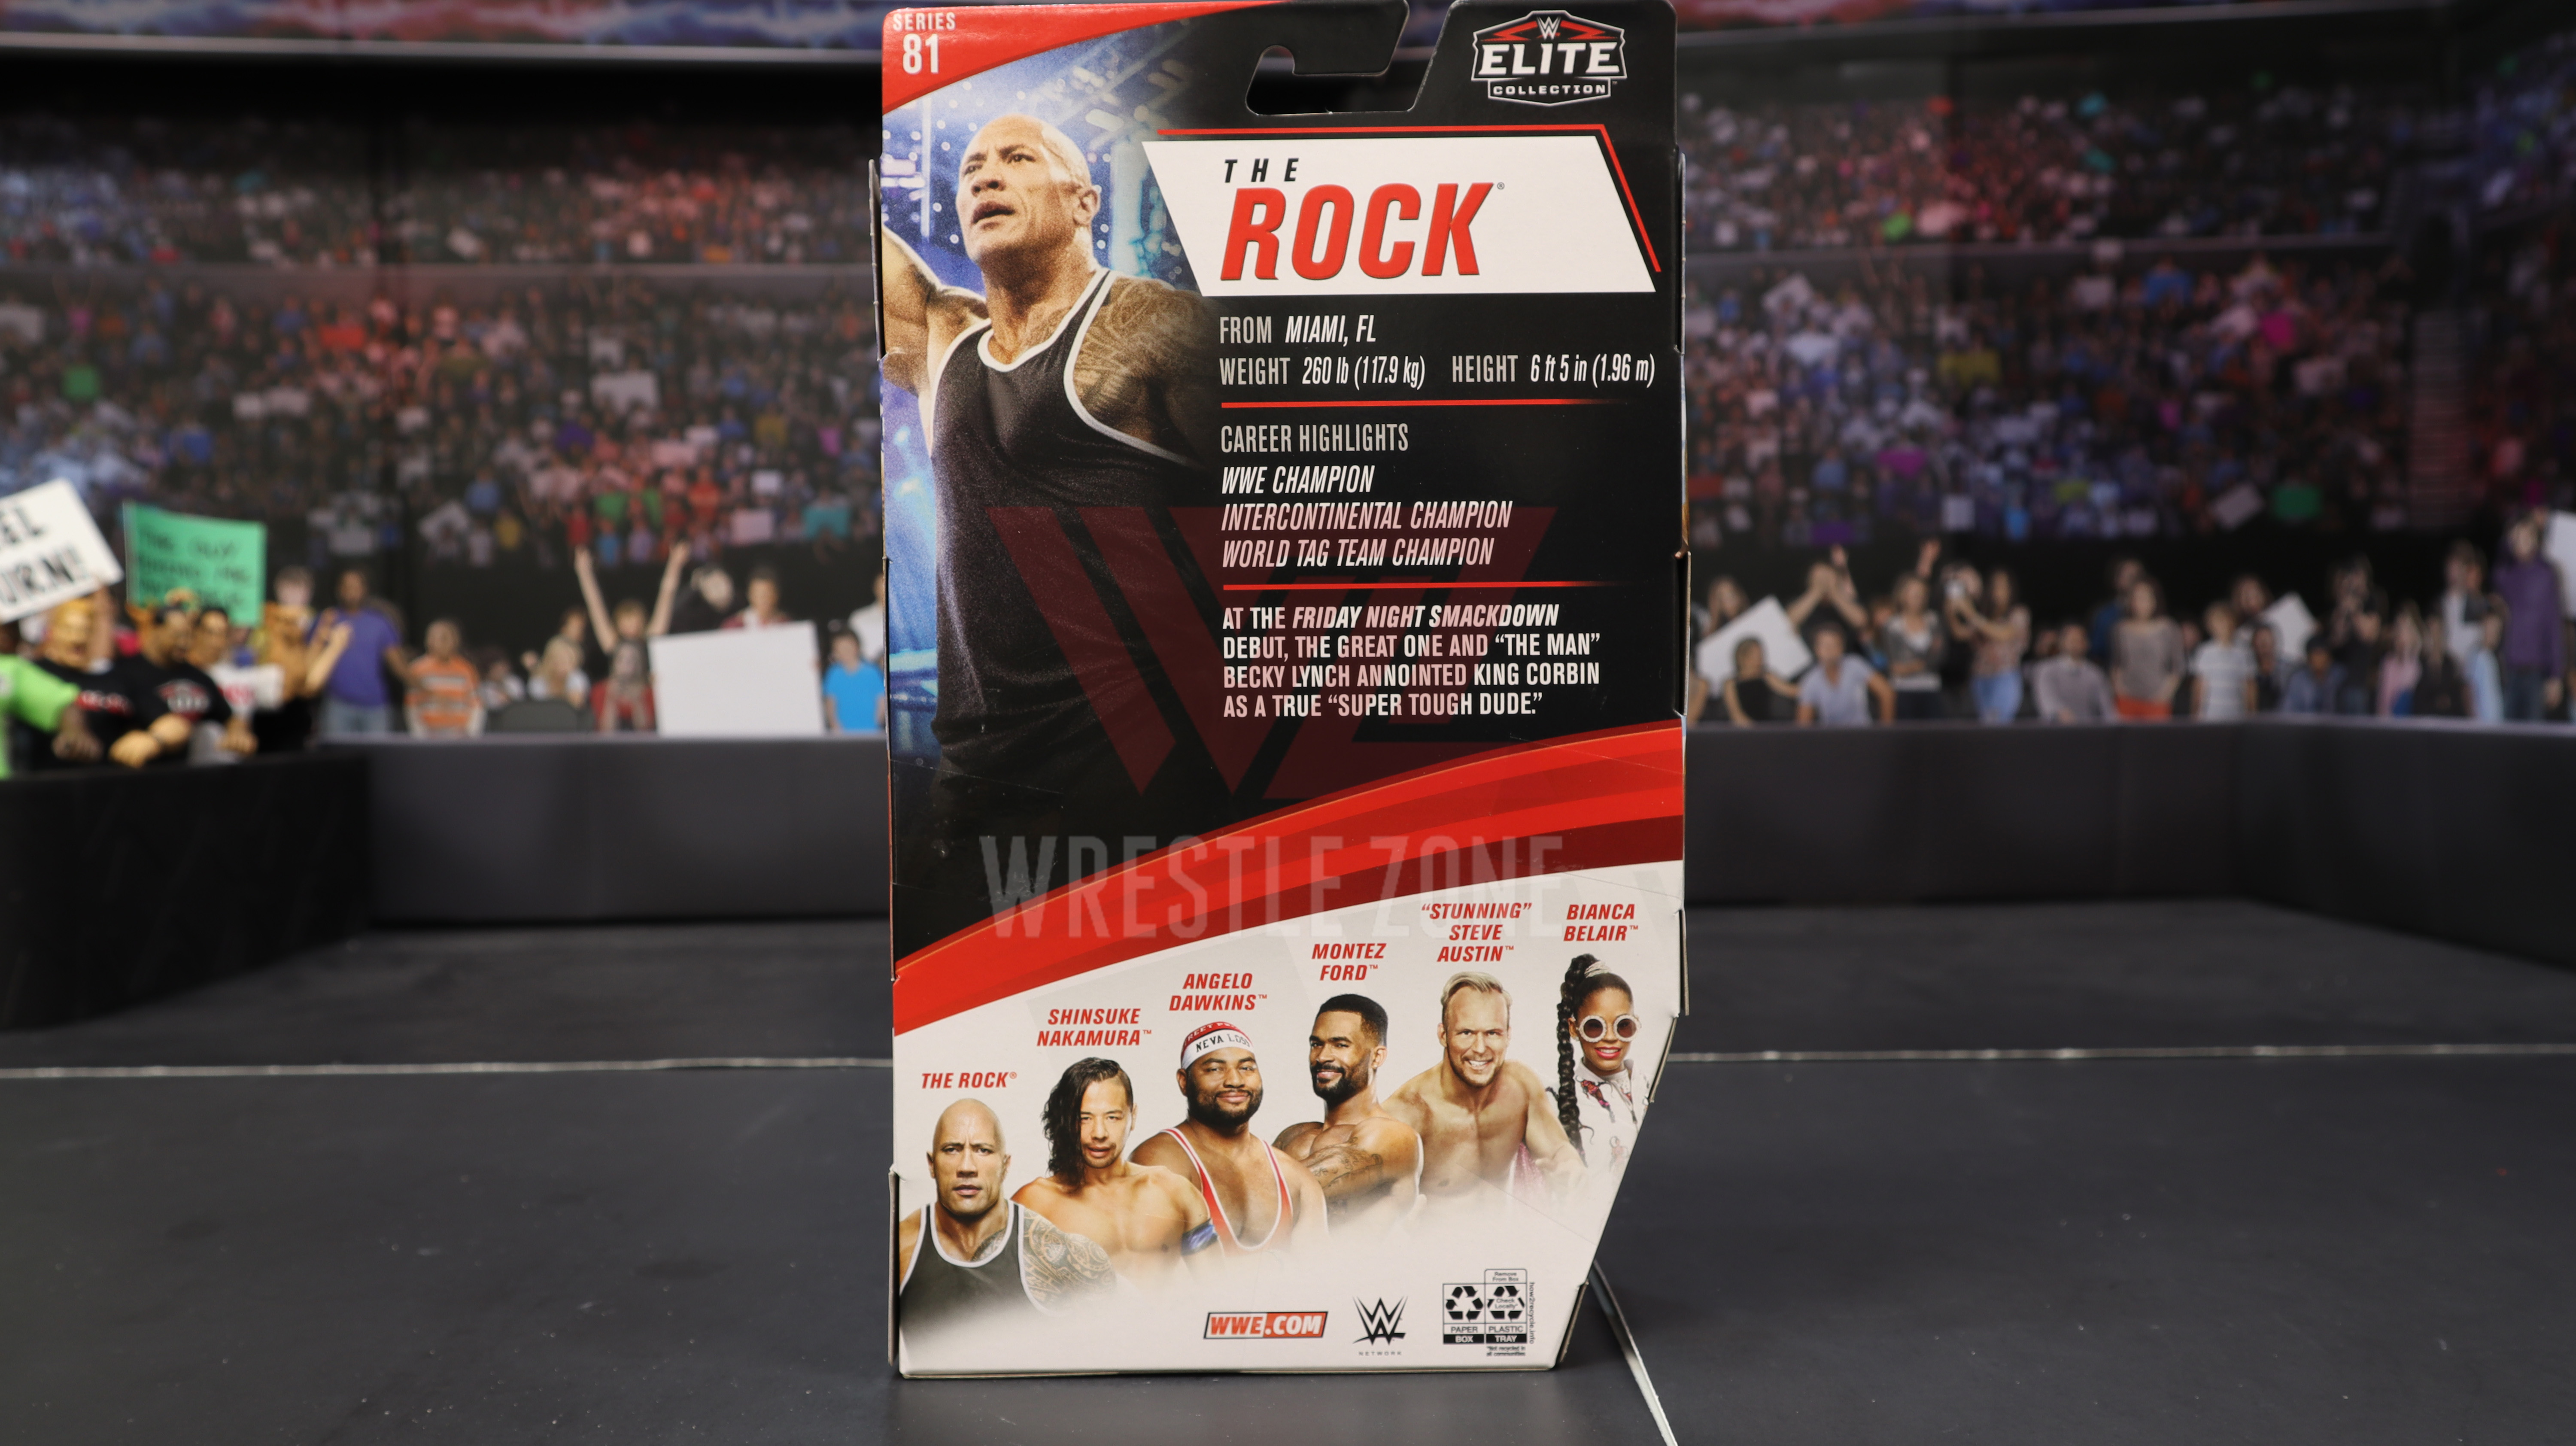 wz_wwe_elite81_rock_20201119_1524